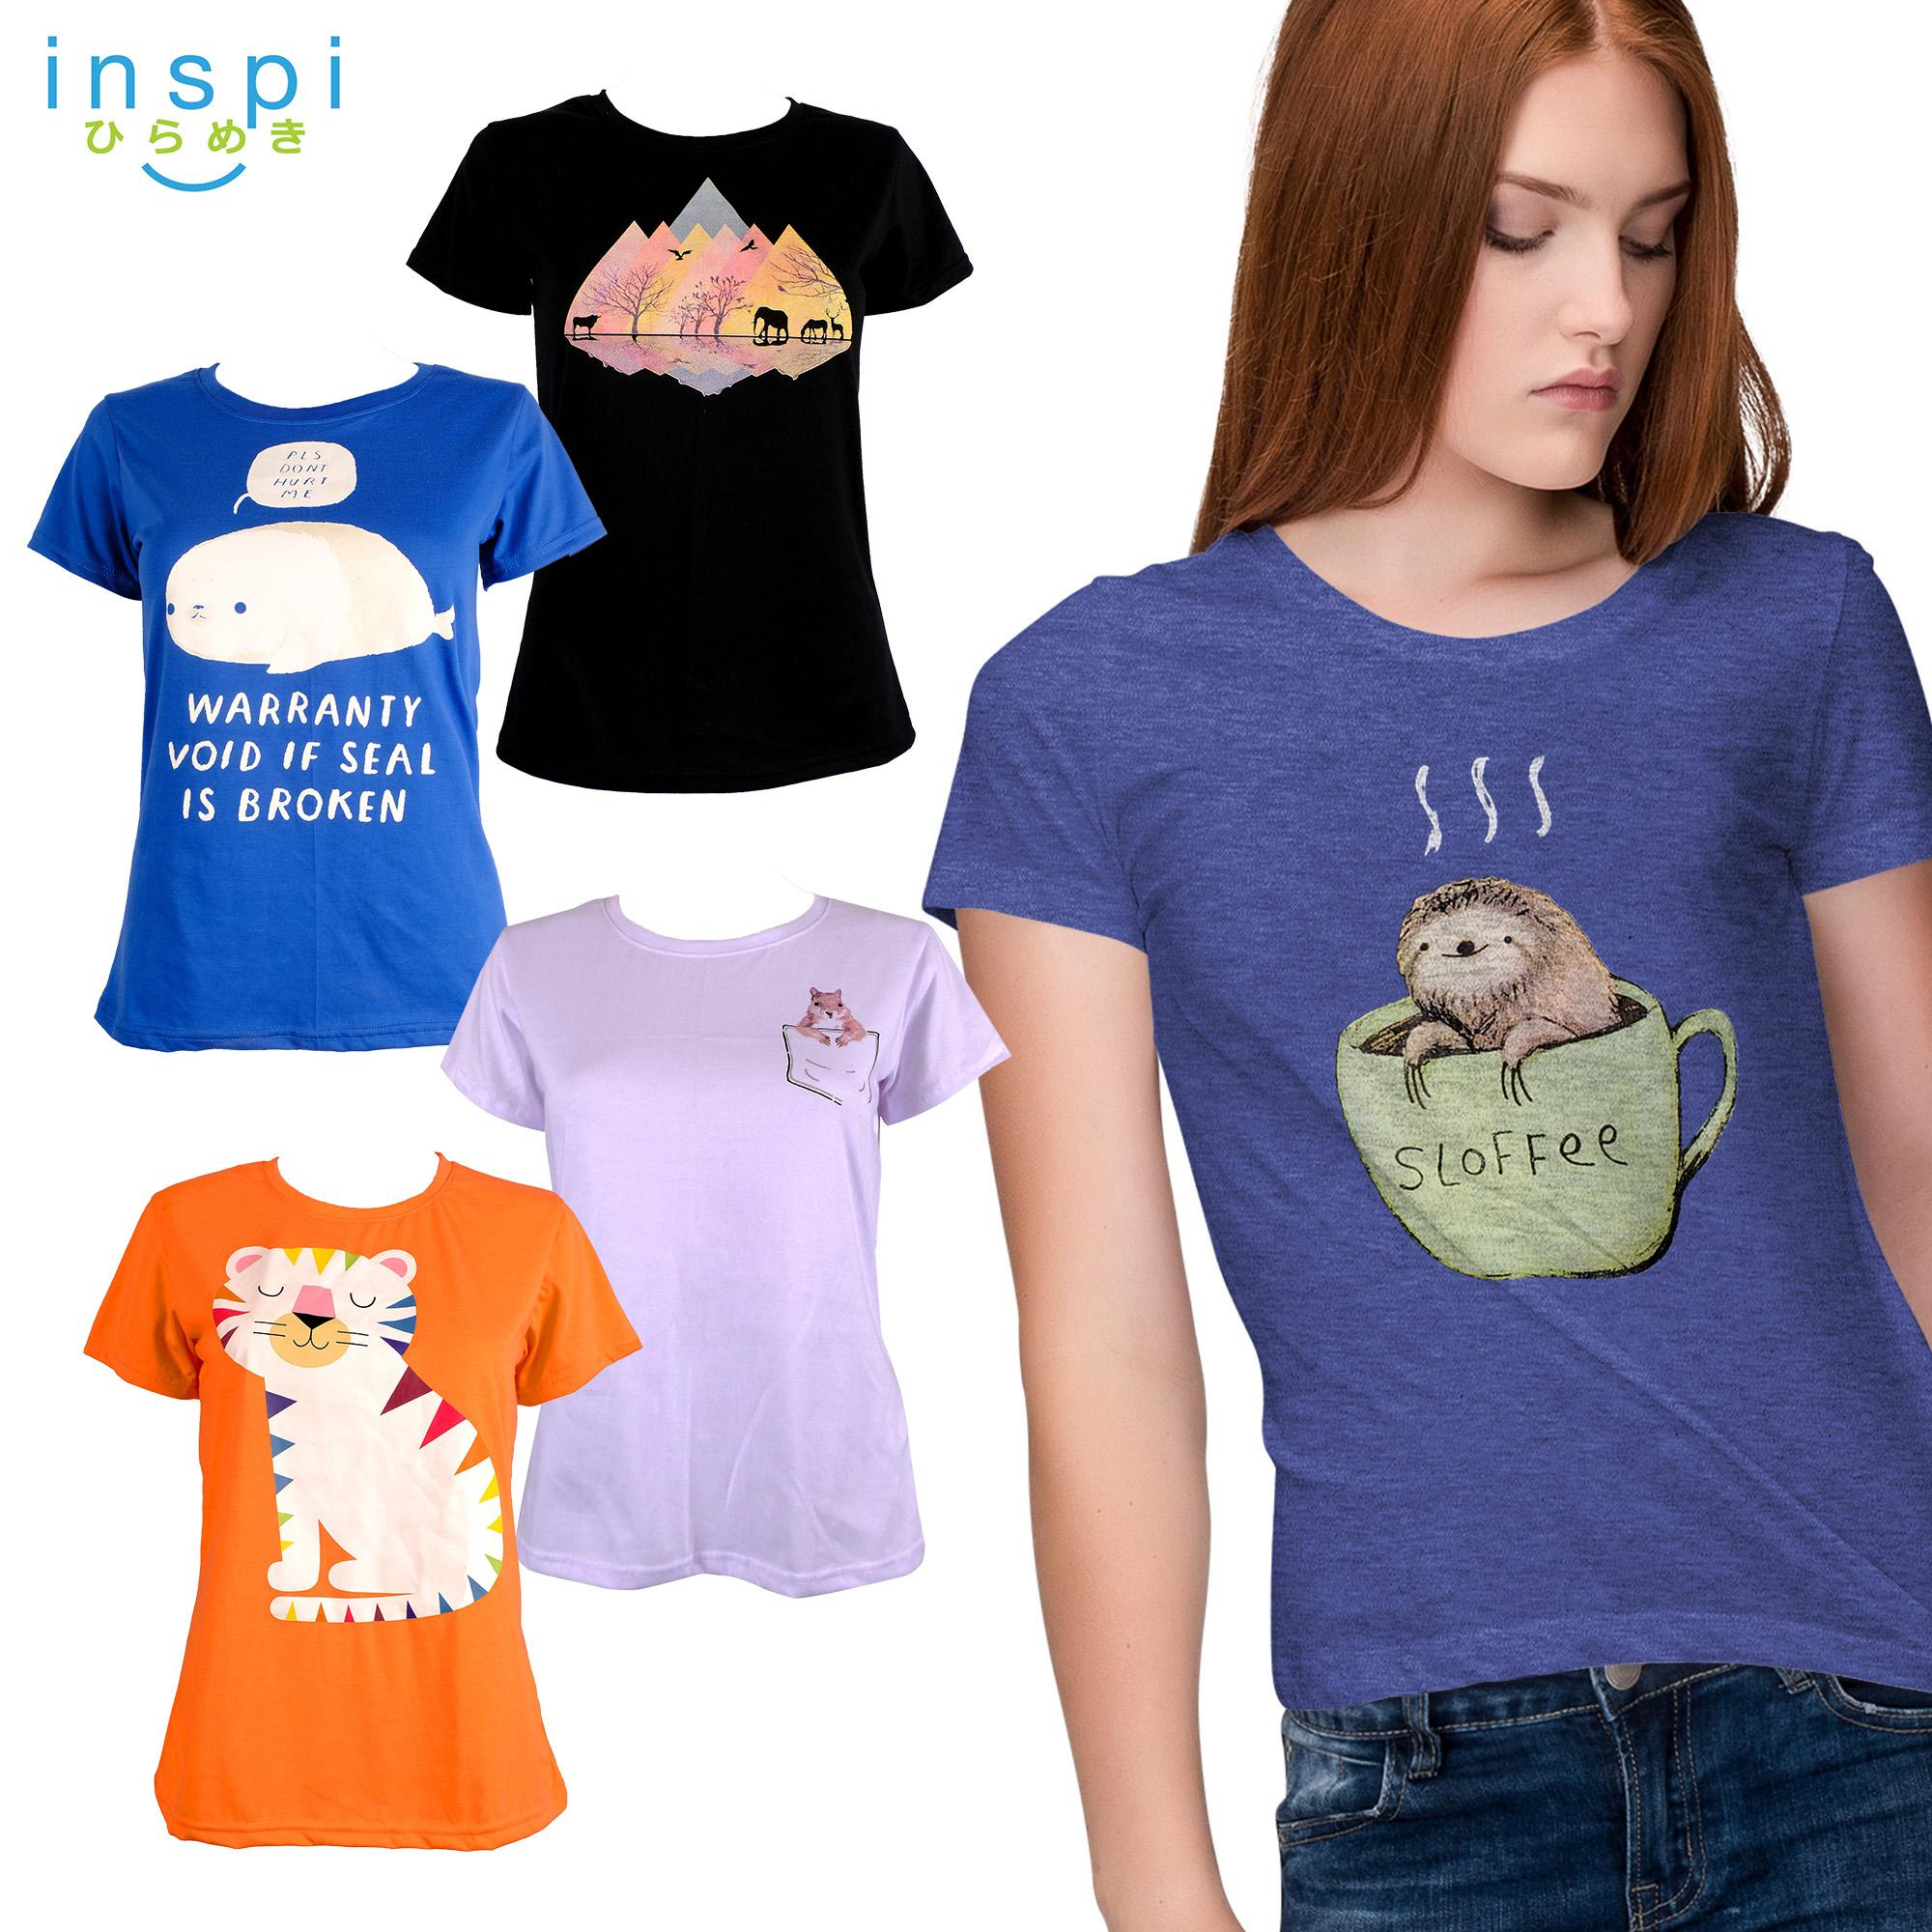 6b2da372e7f INSPI Tees Ladies Pet Collection tshirt printed graphic tee Ladies t shirt  shirts women tshirts for